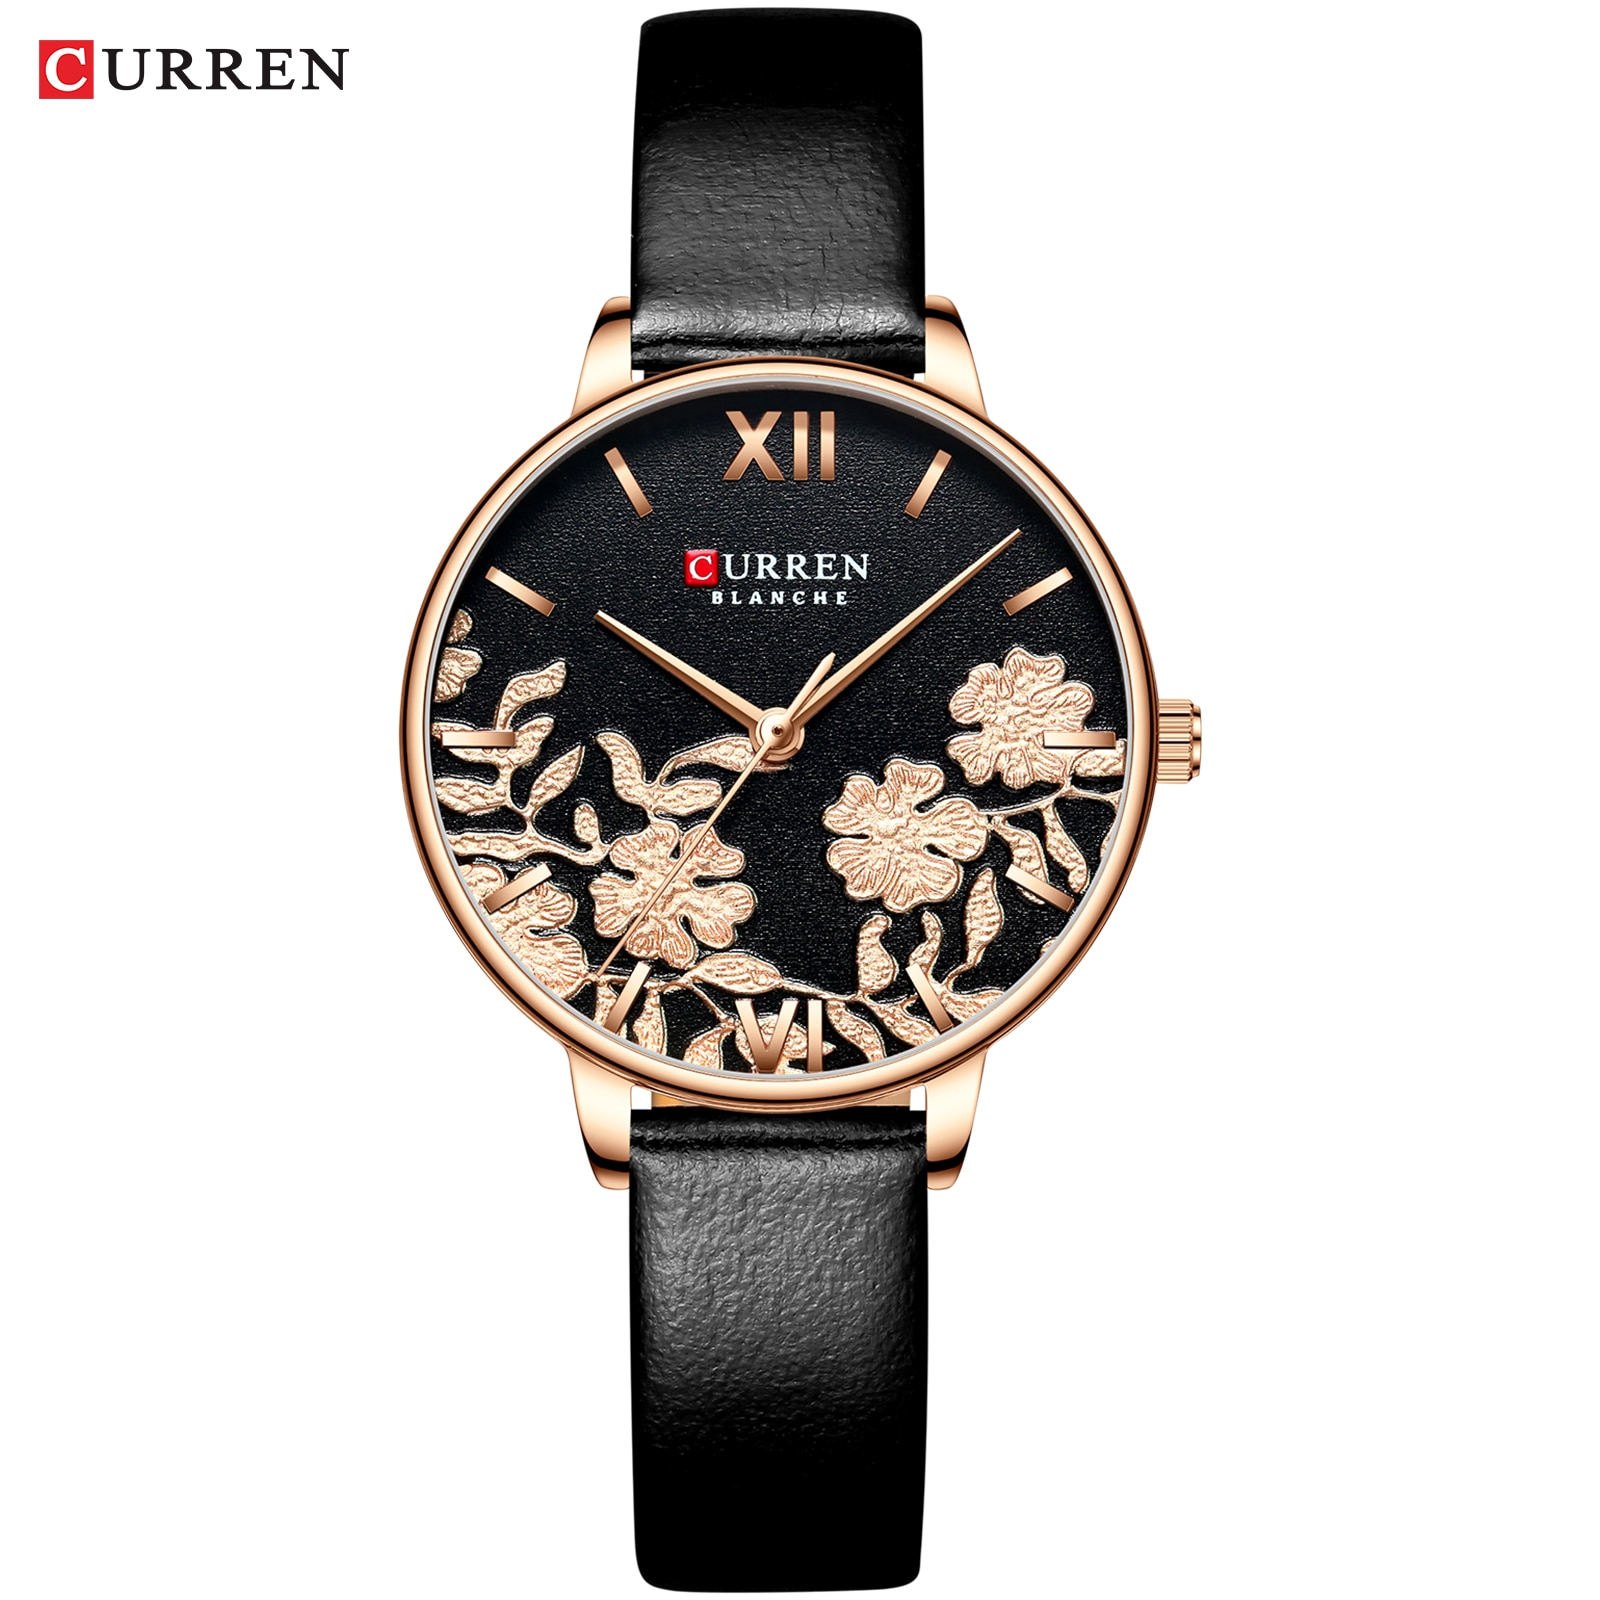 CURREN 2019 Women Watches Rome Dial Classic Flower Thin Leather Strap Quartz Wristwatch Watch Montre Femme For Ladies Girls Gift enlarge